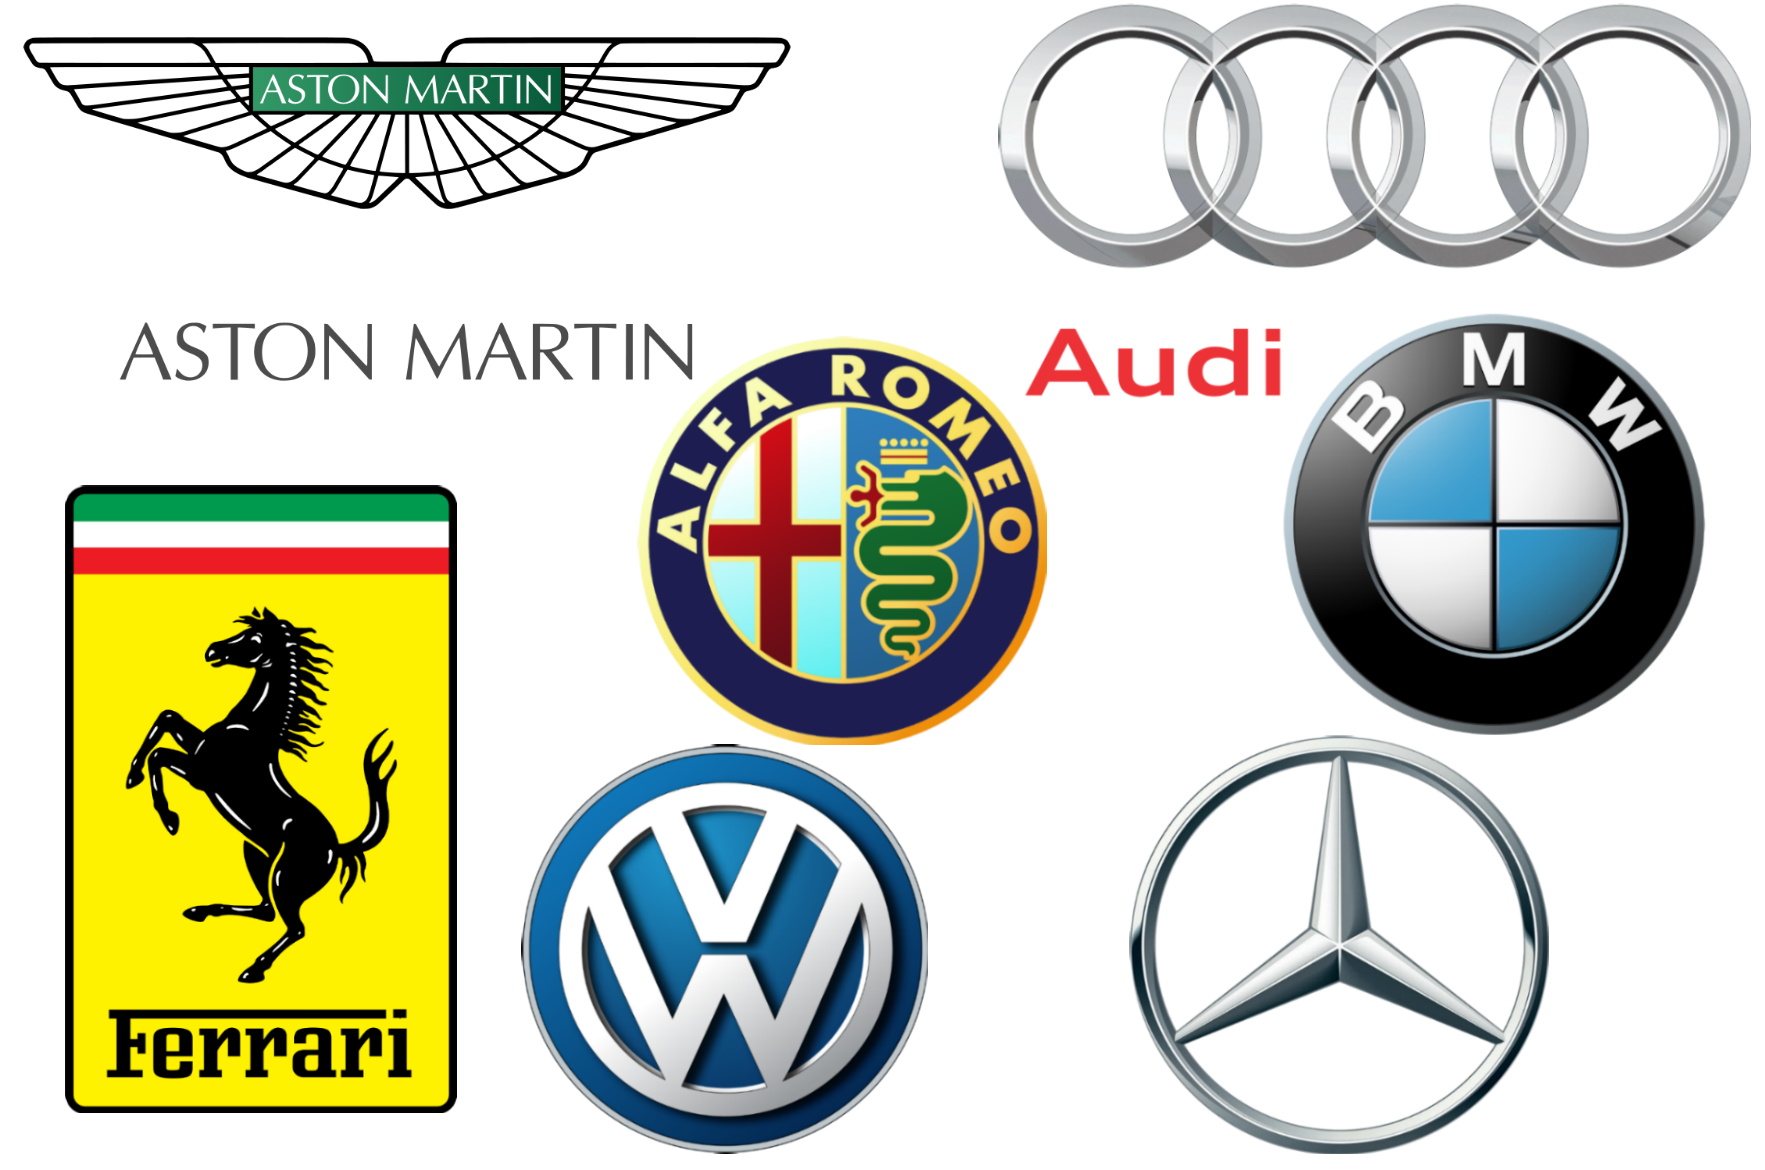 European car brands companies and manufacturers car brand names european car brands logos biocorpaavc Choice Image